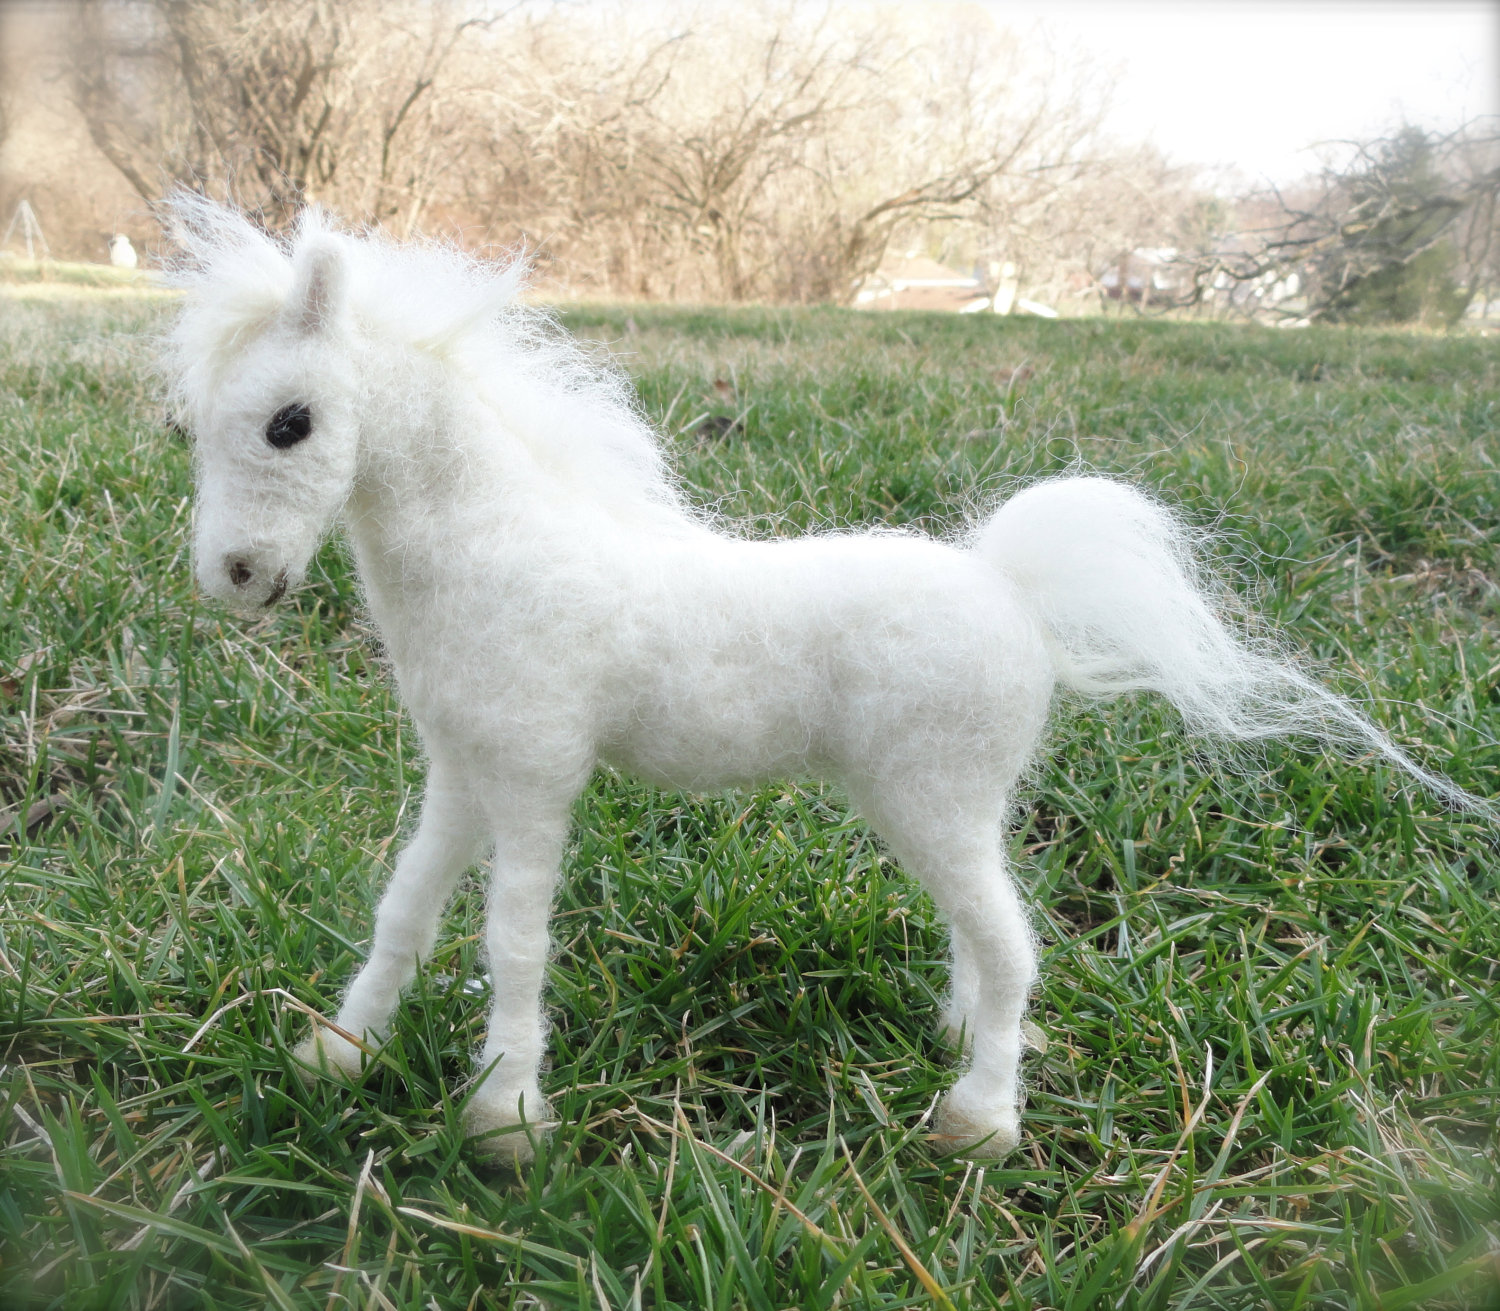 Claudiamari's white pony on Etsy